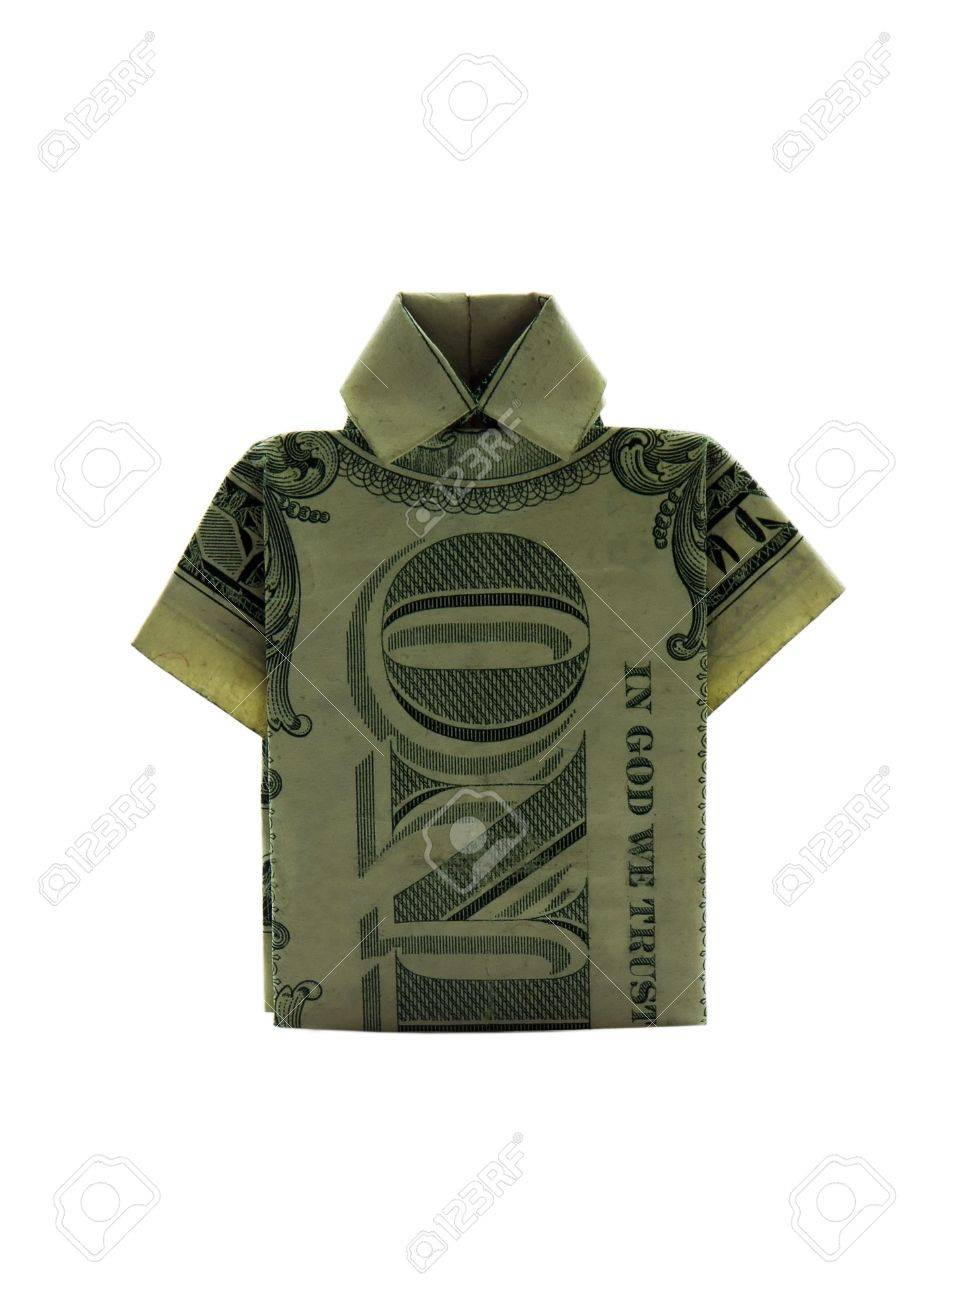 P O Of A T Shirt Made From A Folded Dollar Bill Stock P O 910448